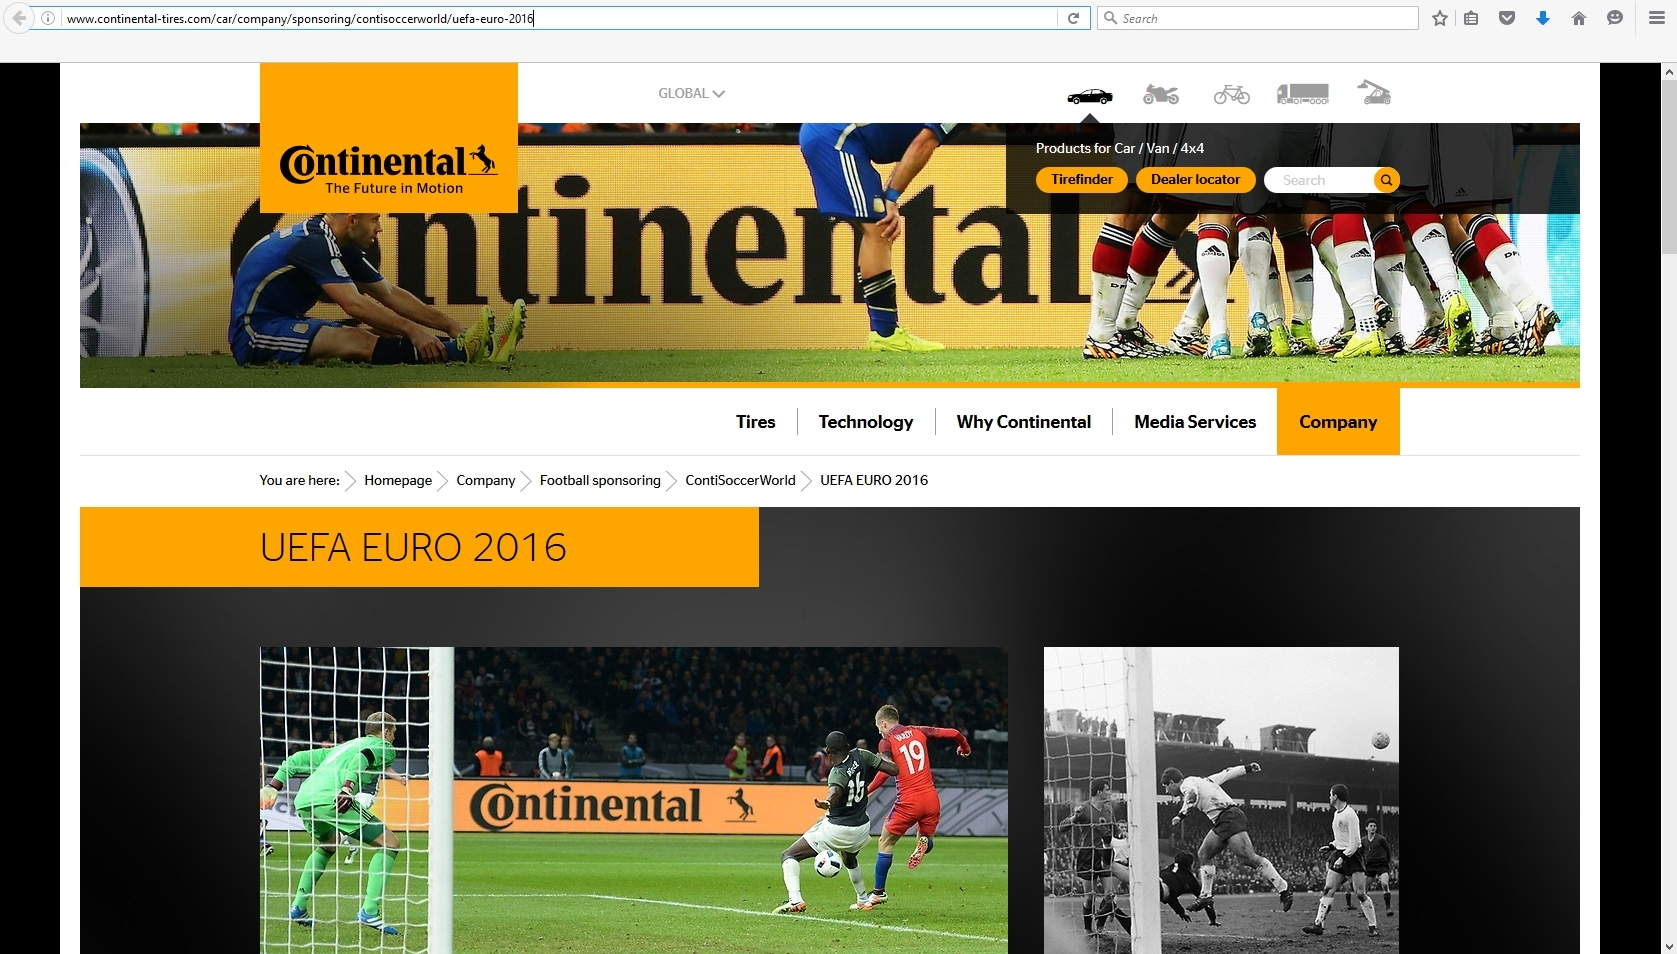 ContiSoccerWorld website